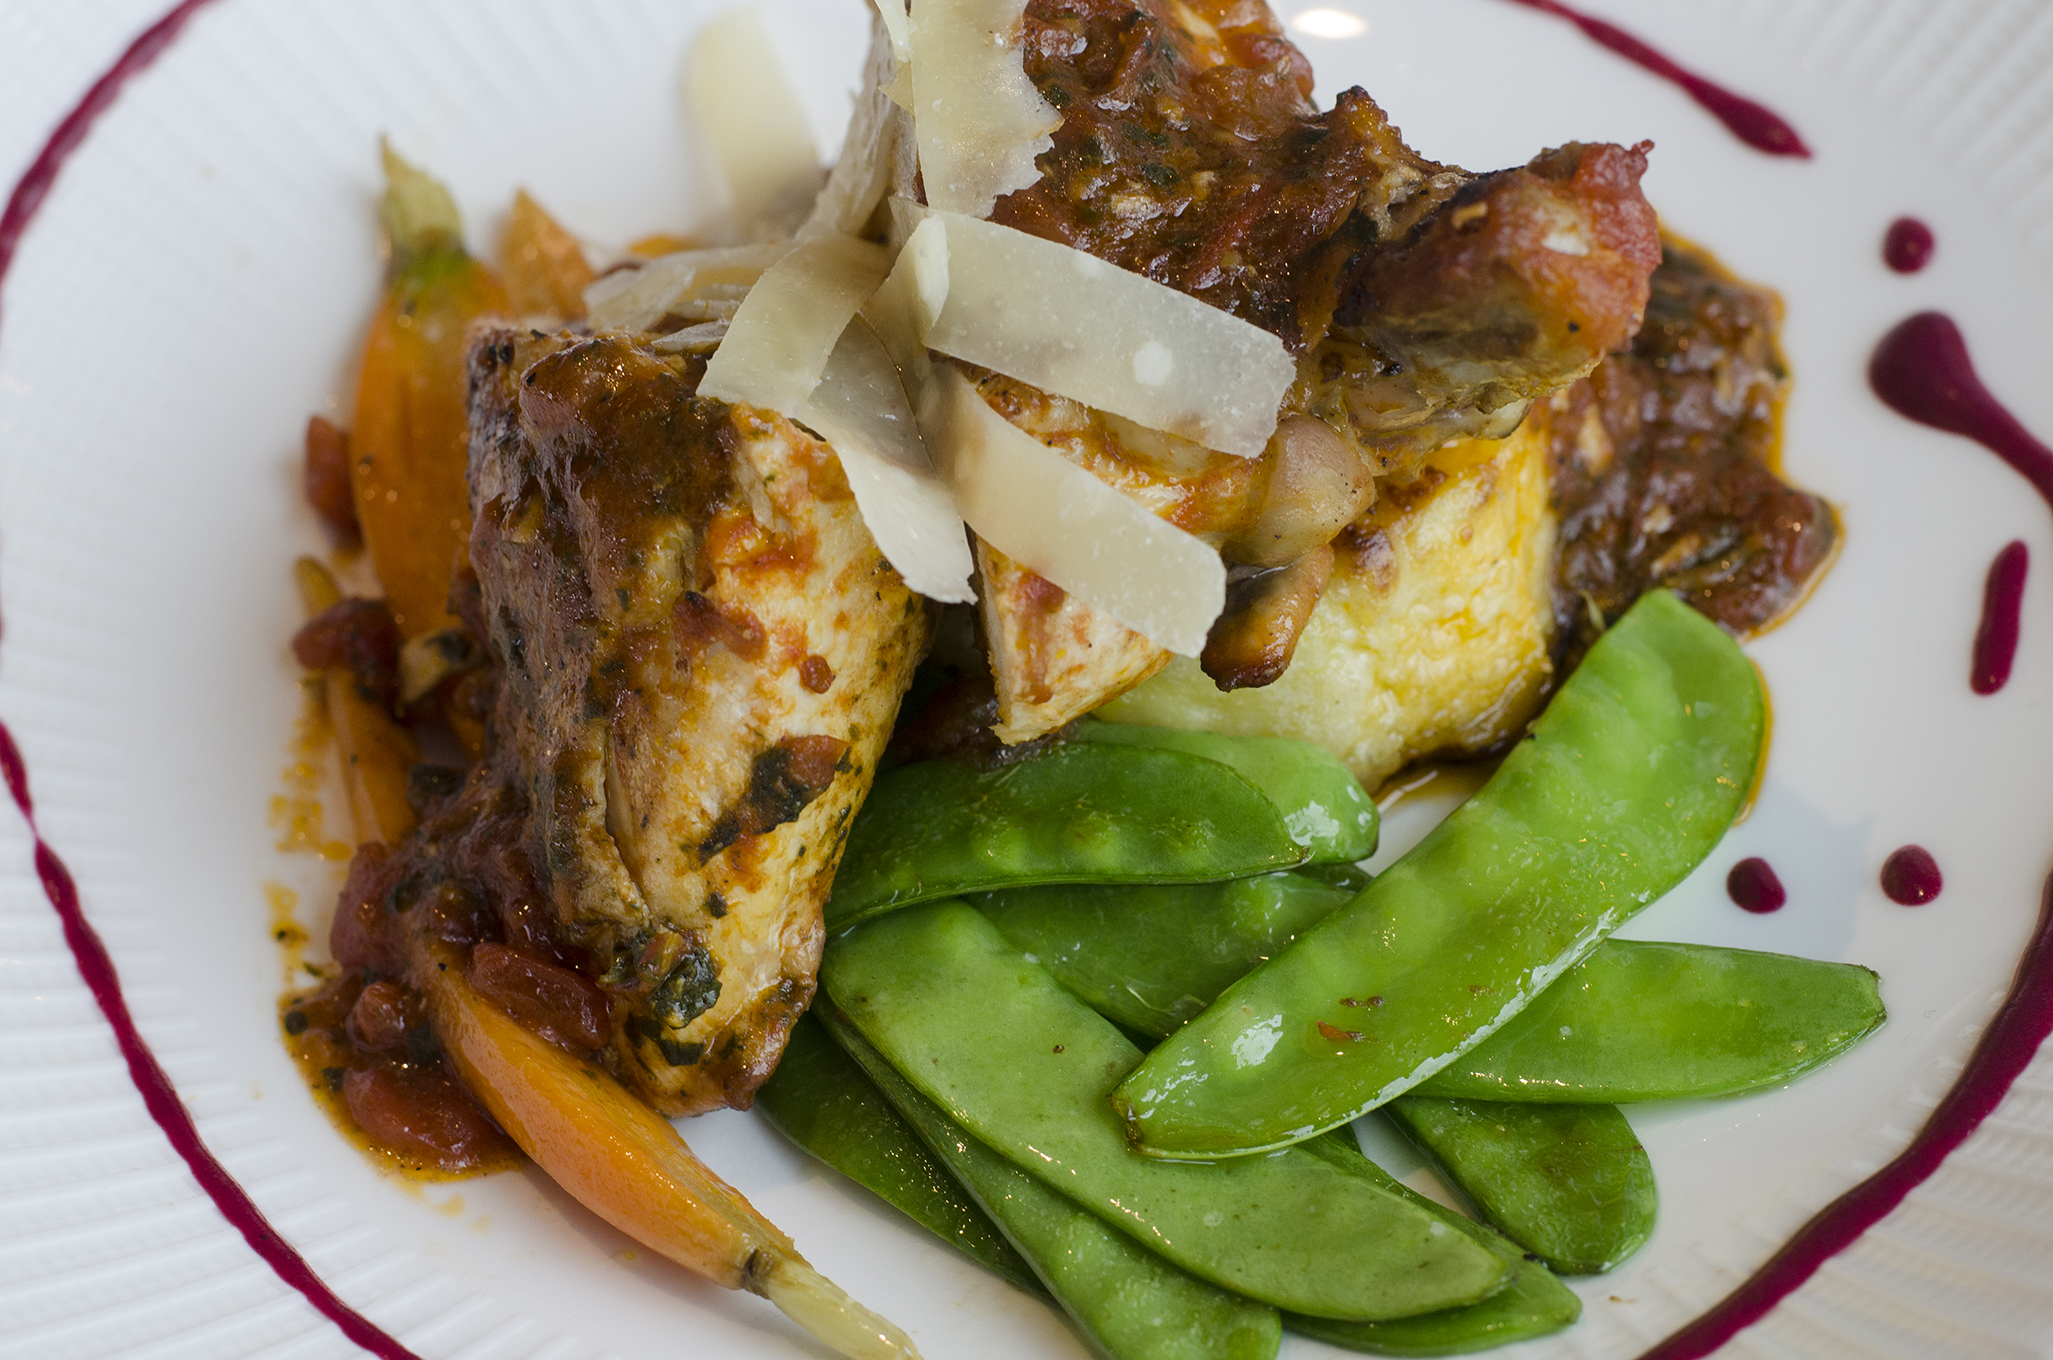 Roasted Chicken from Bacchus Ristorante in the heart of Windsor, Ontario's, Via Italia.